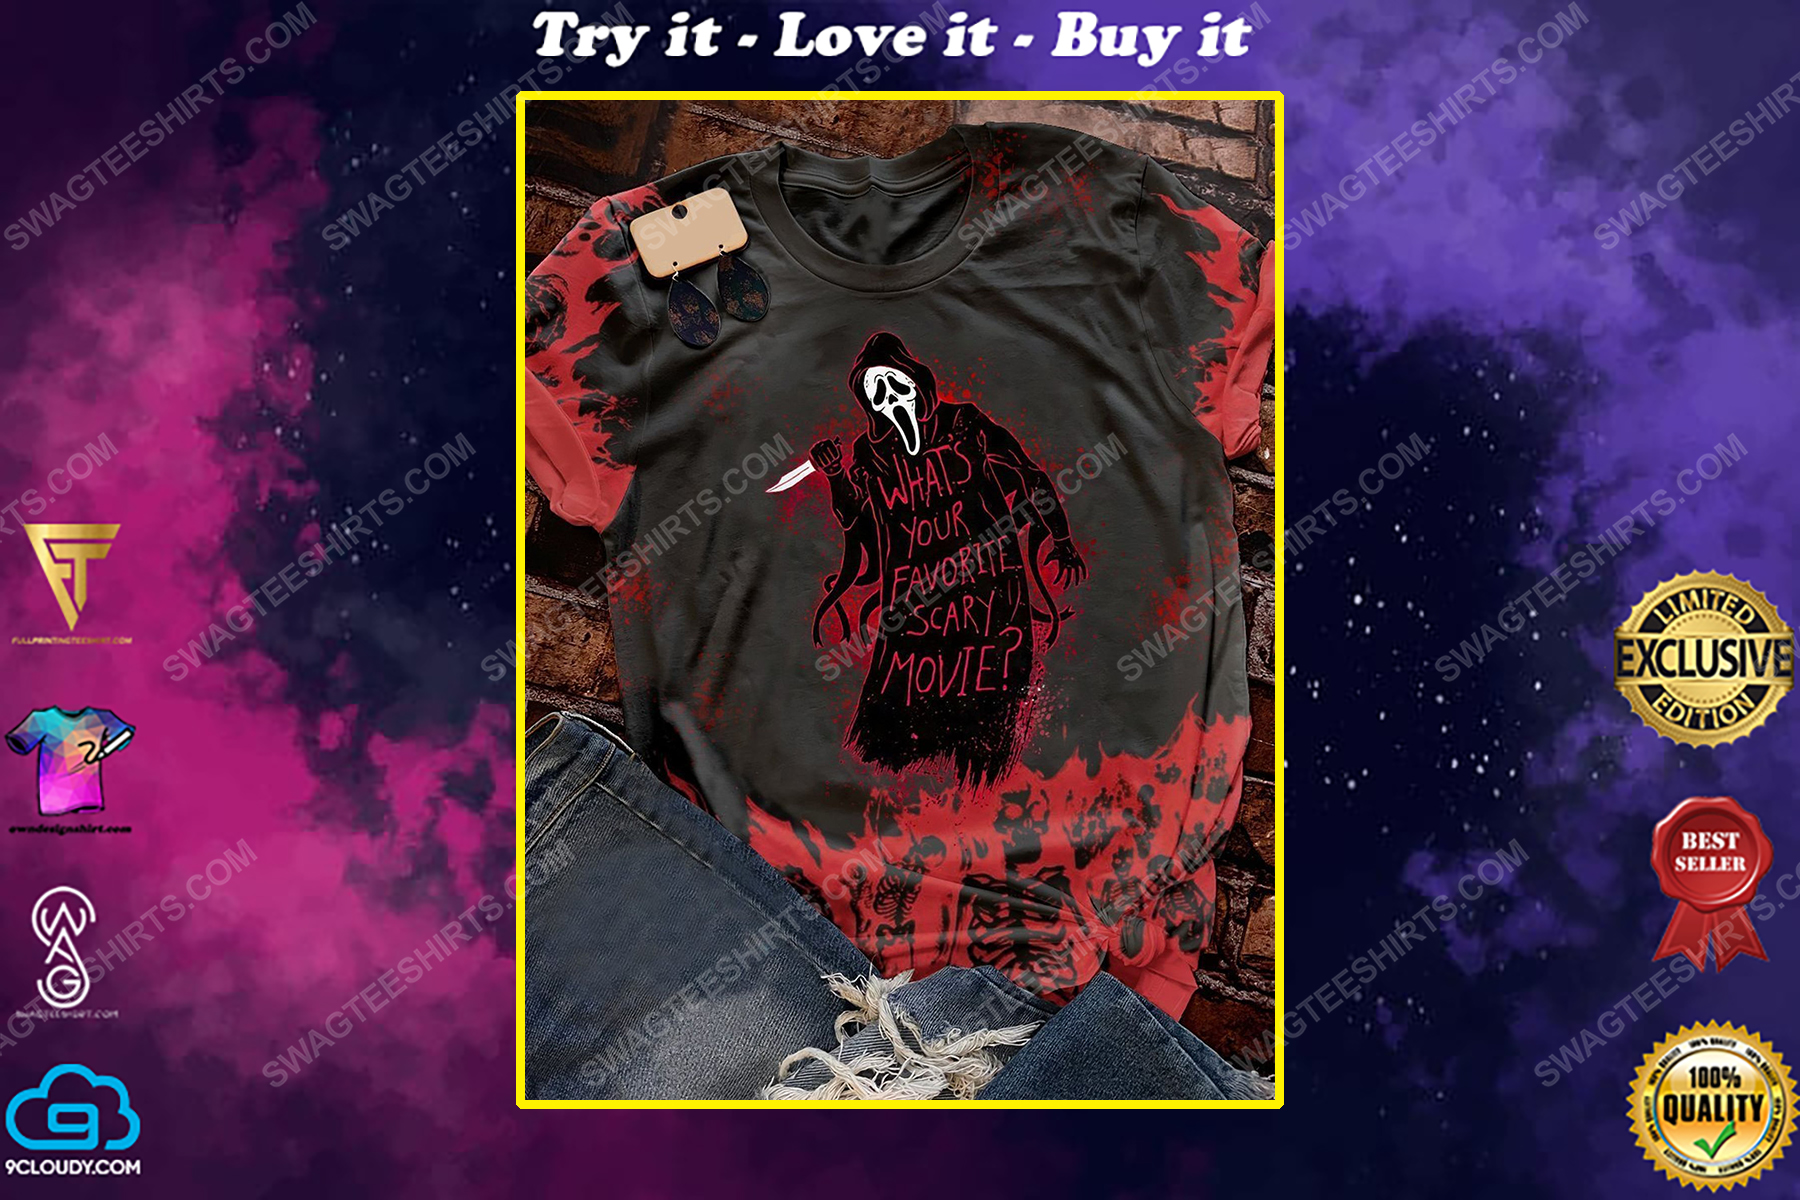 Halloween what's your favorite scary movie screaming movie shirt